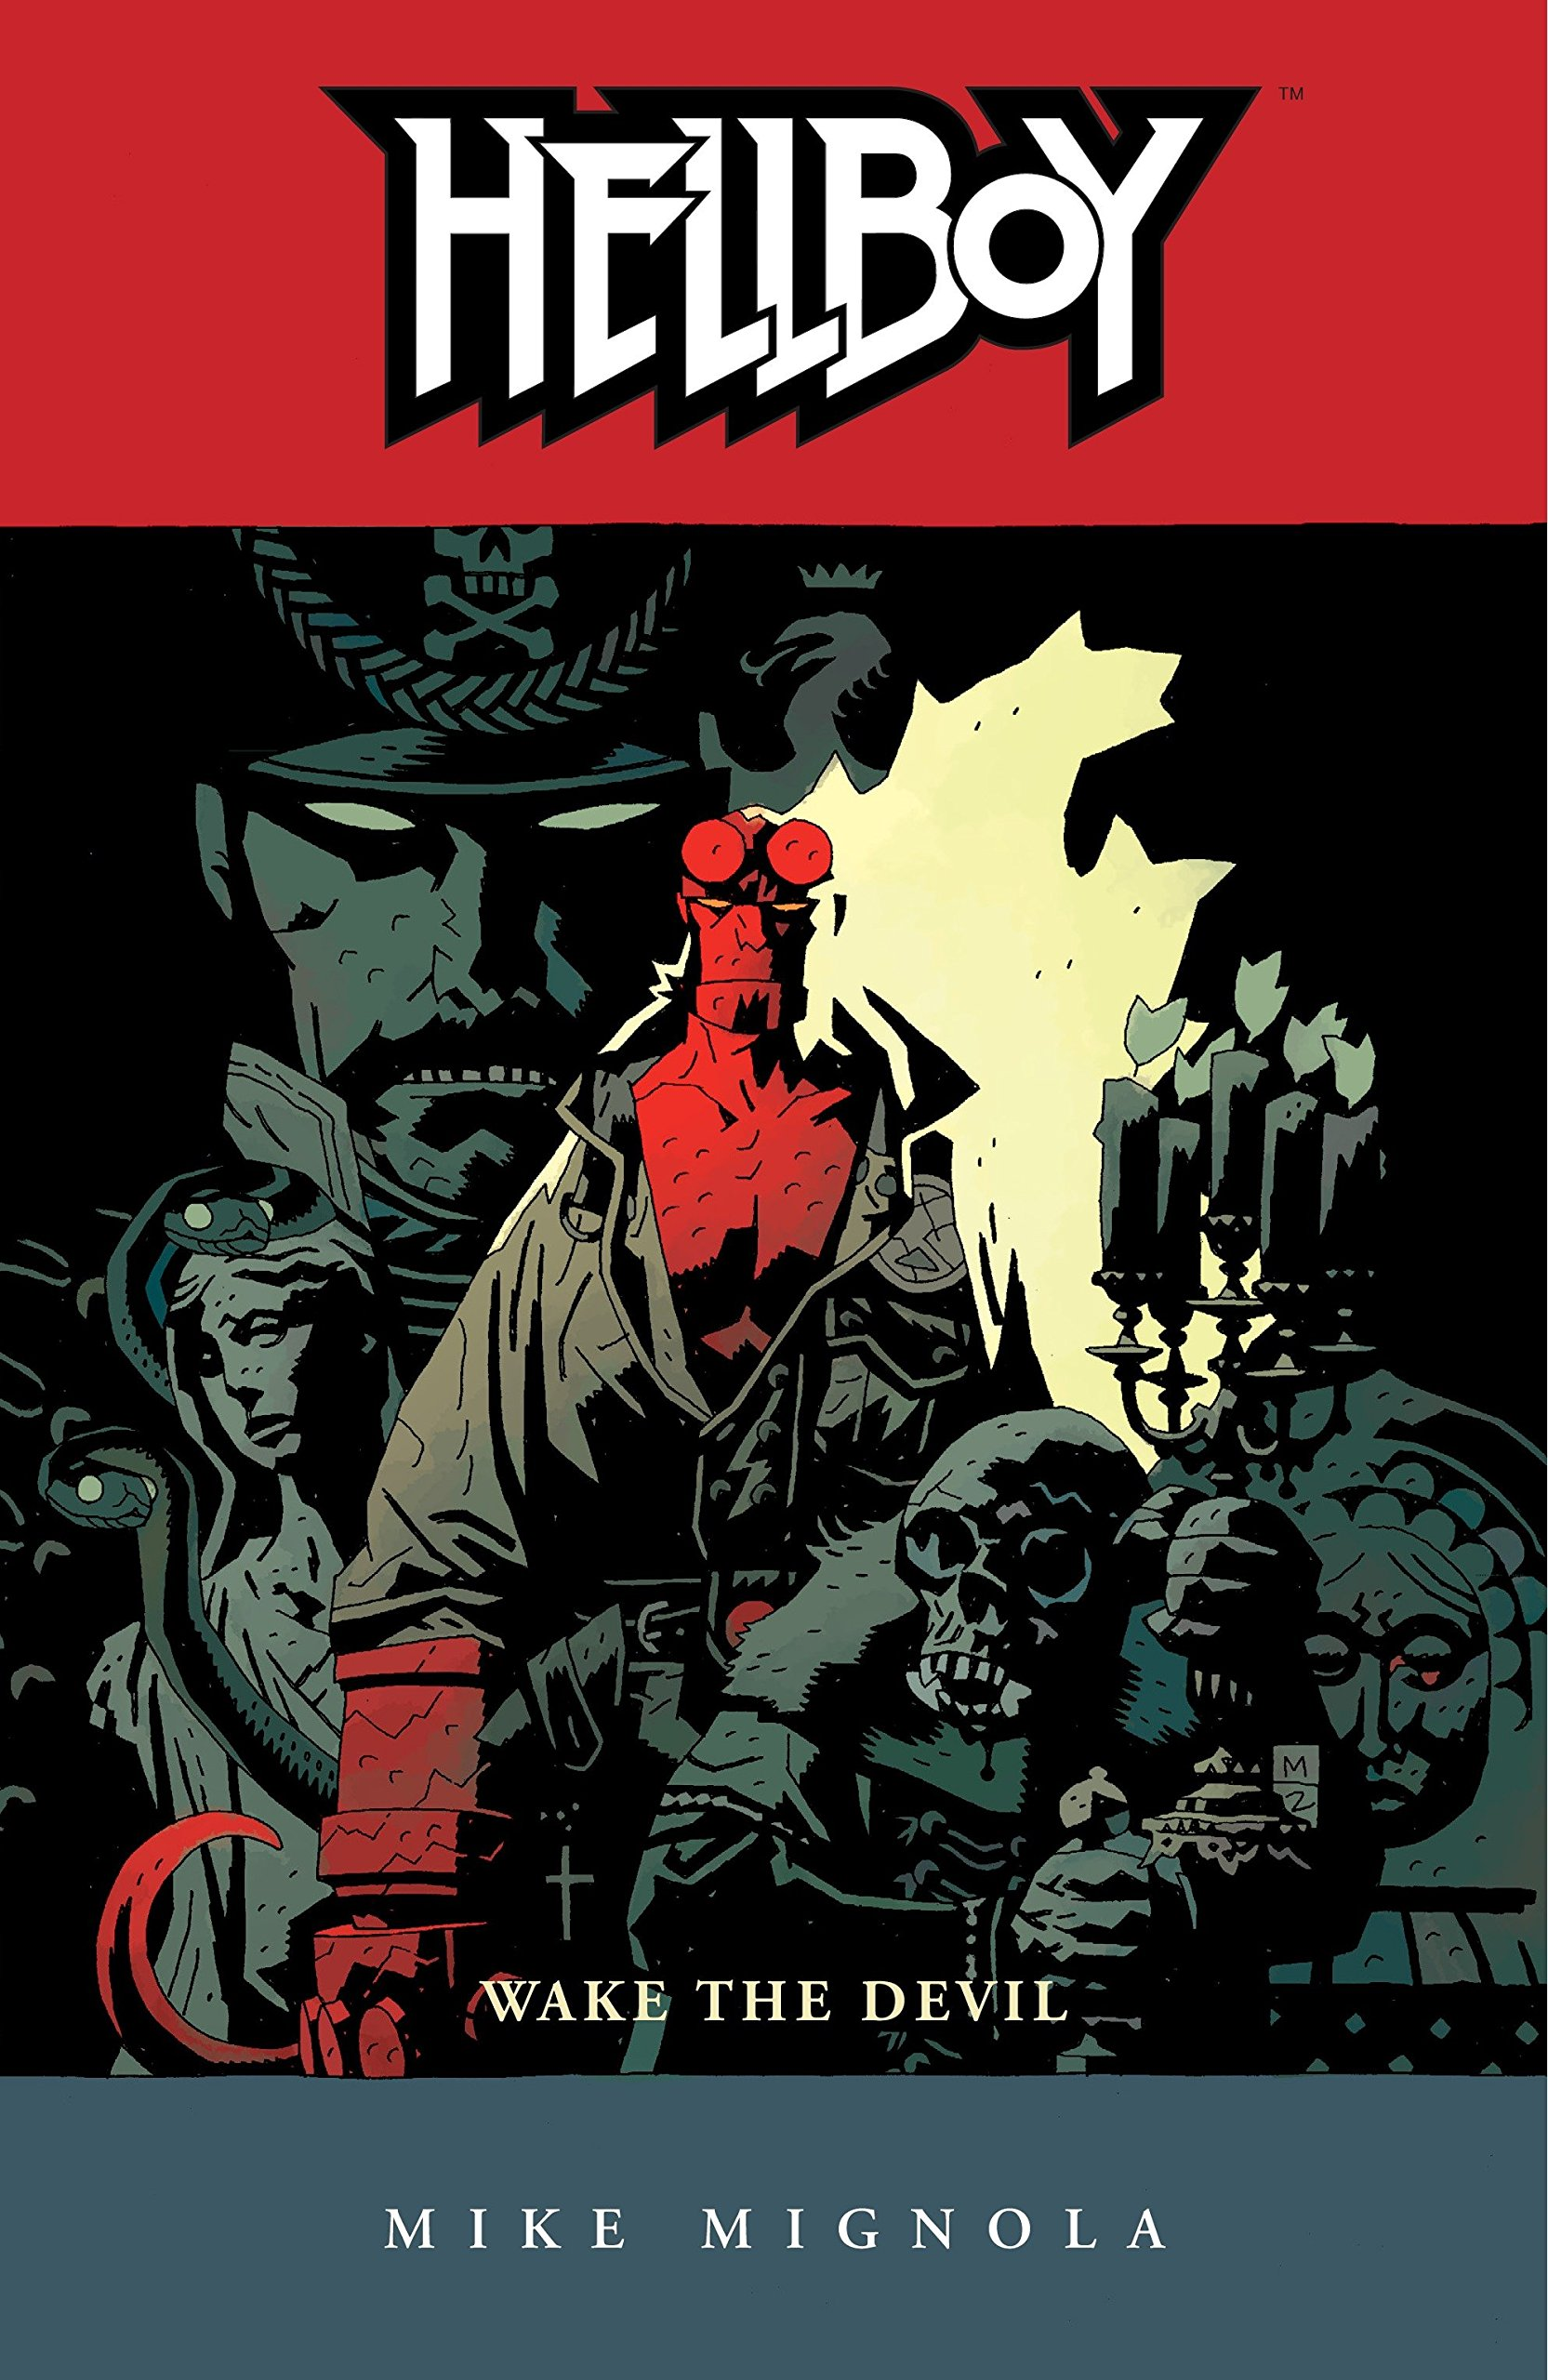 Hellboy vol 2: Wake the Devil story by Mike Mignola